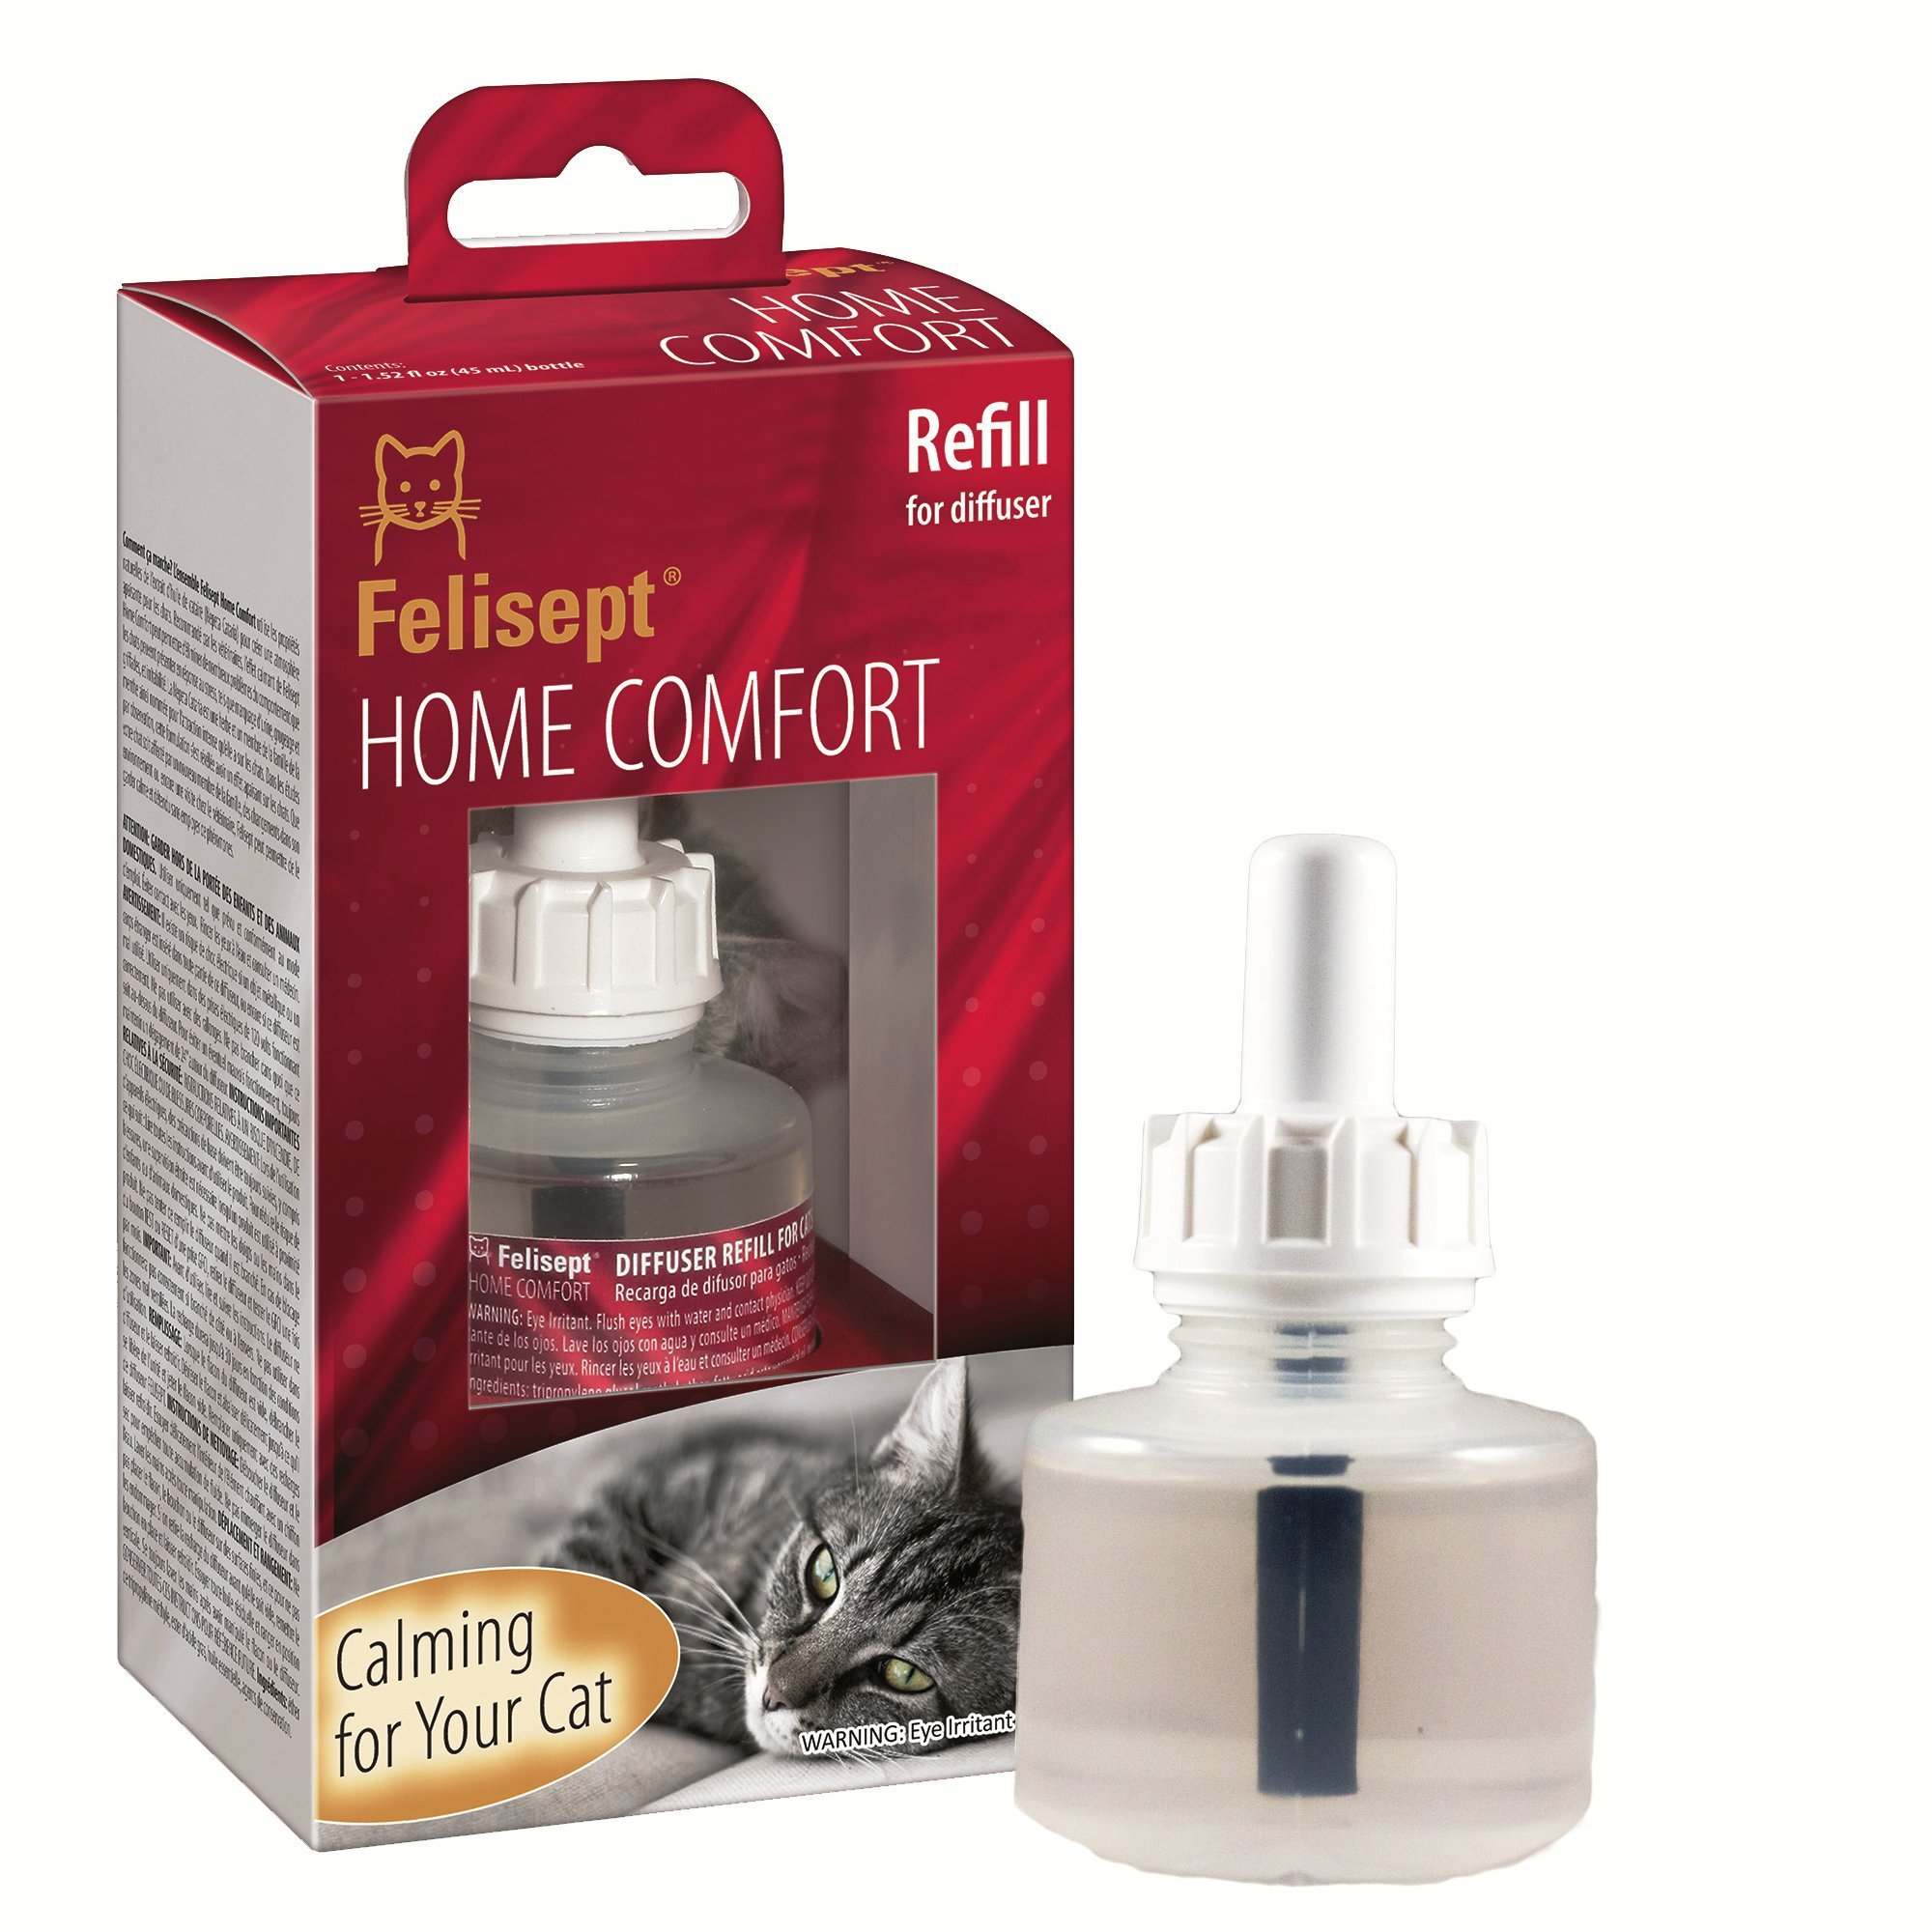 Felisept Home Comfort Plug-In Diffuser Refill - Calming and Tension Relief for Cats by Felisept